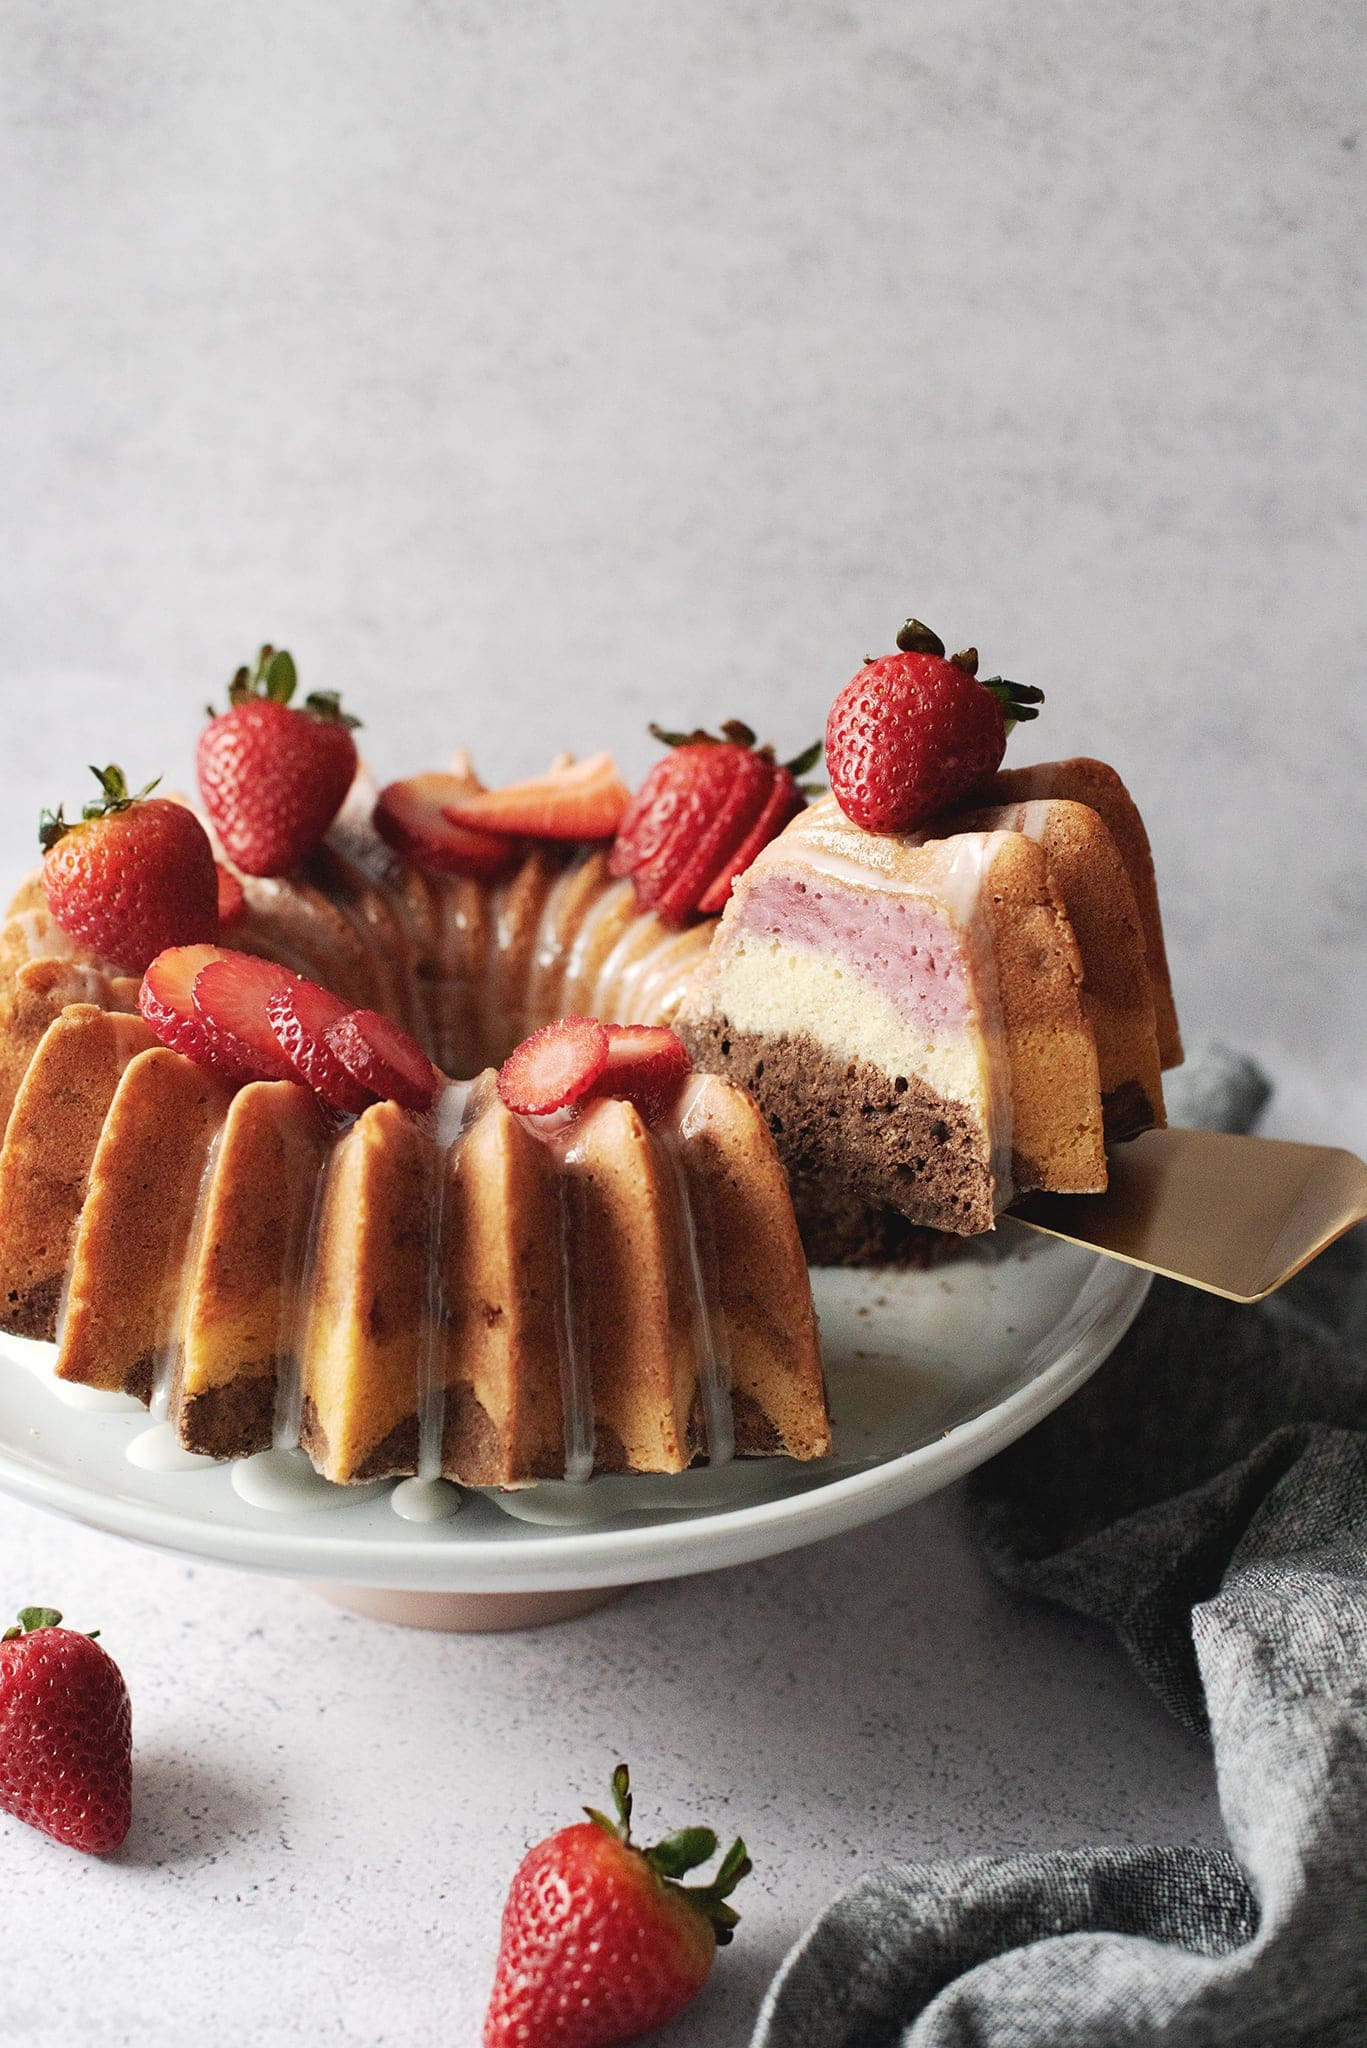 Lifting a slice of neapolitan bundt cake to show layers